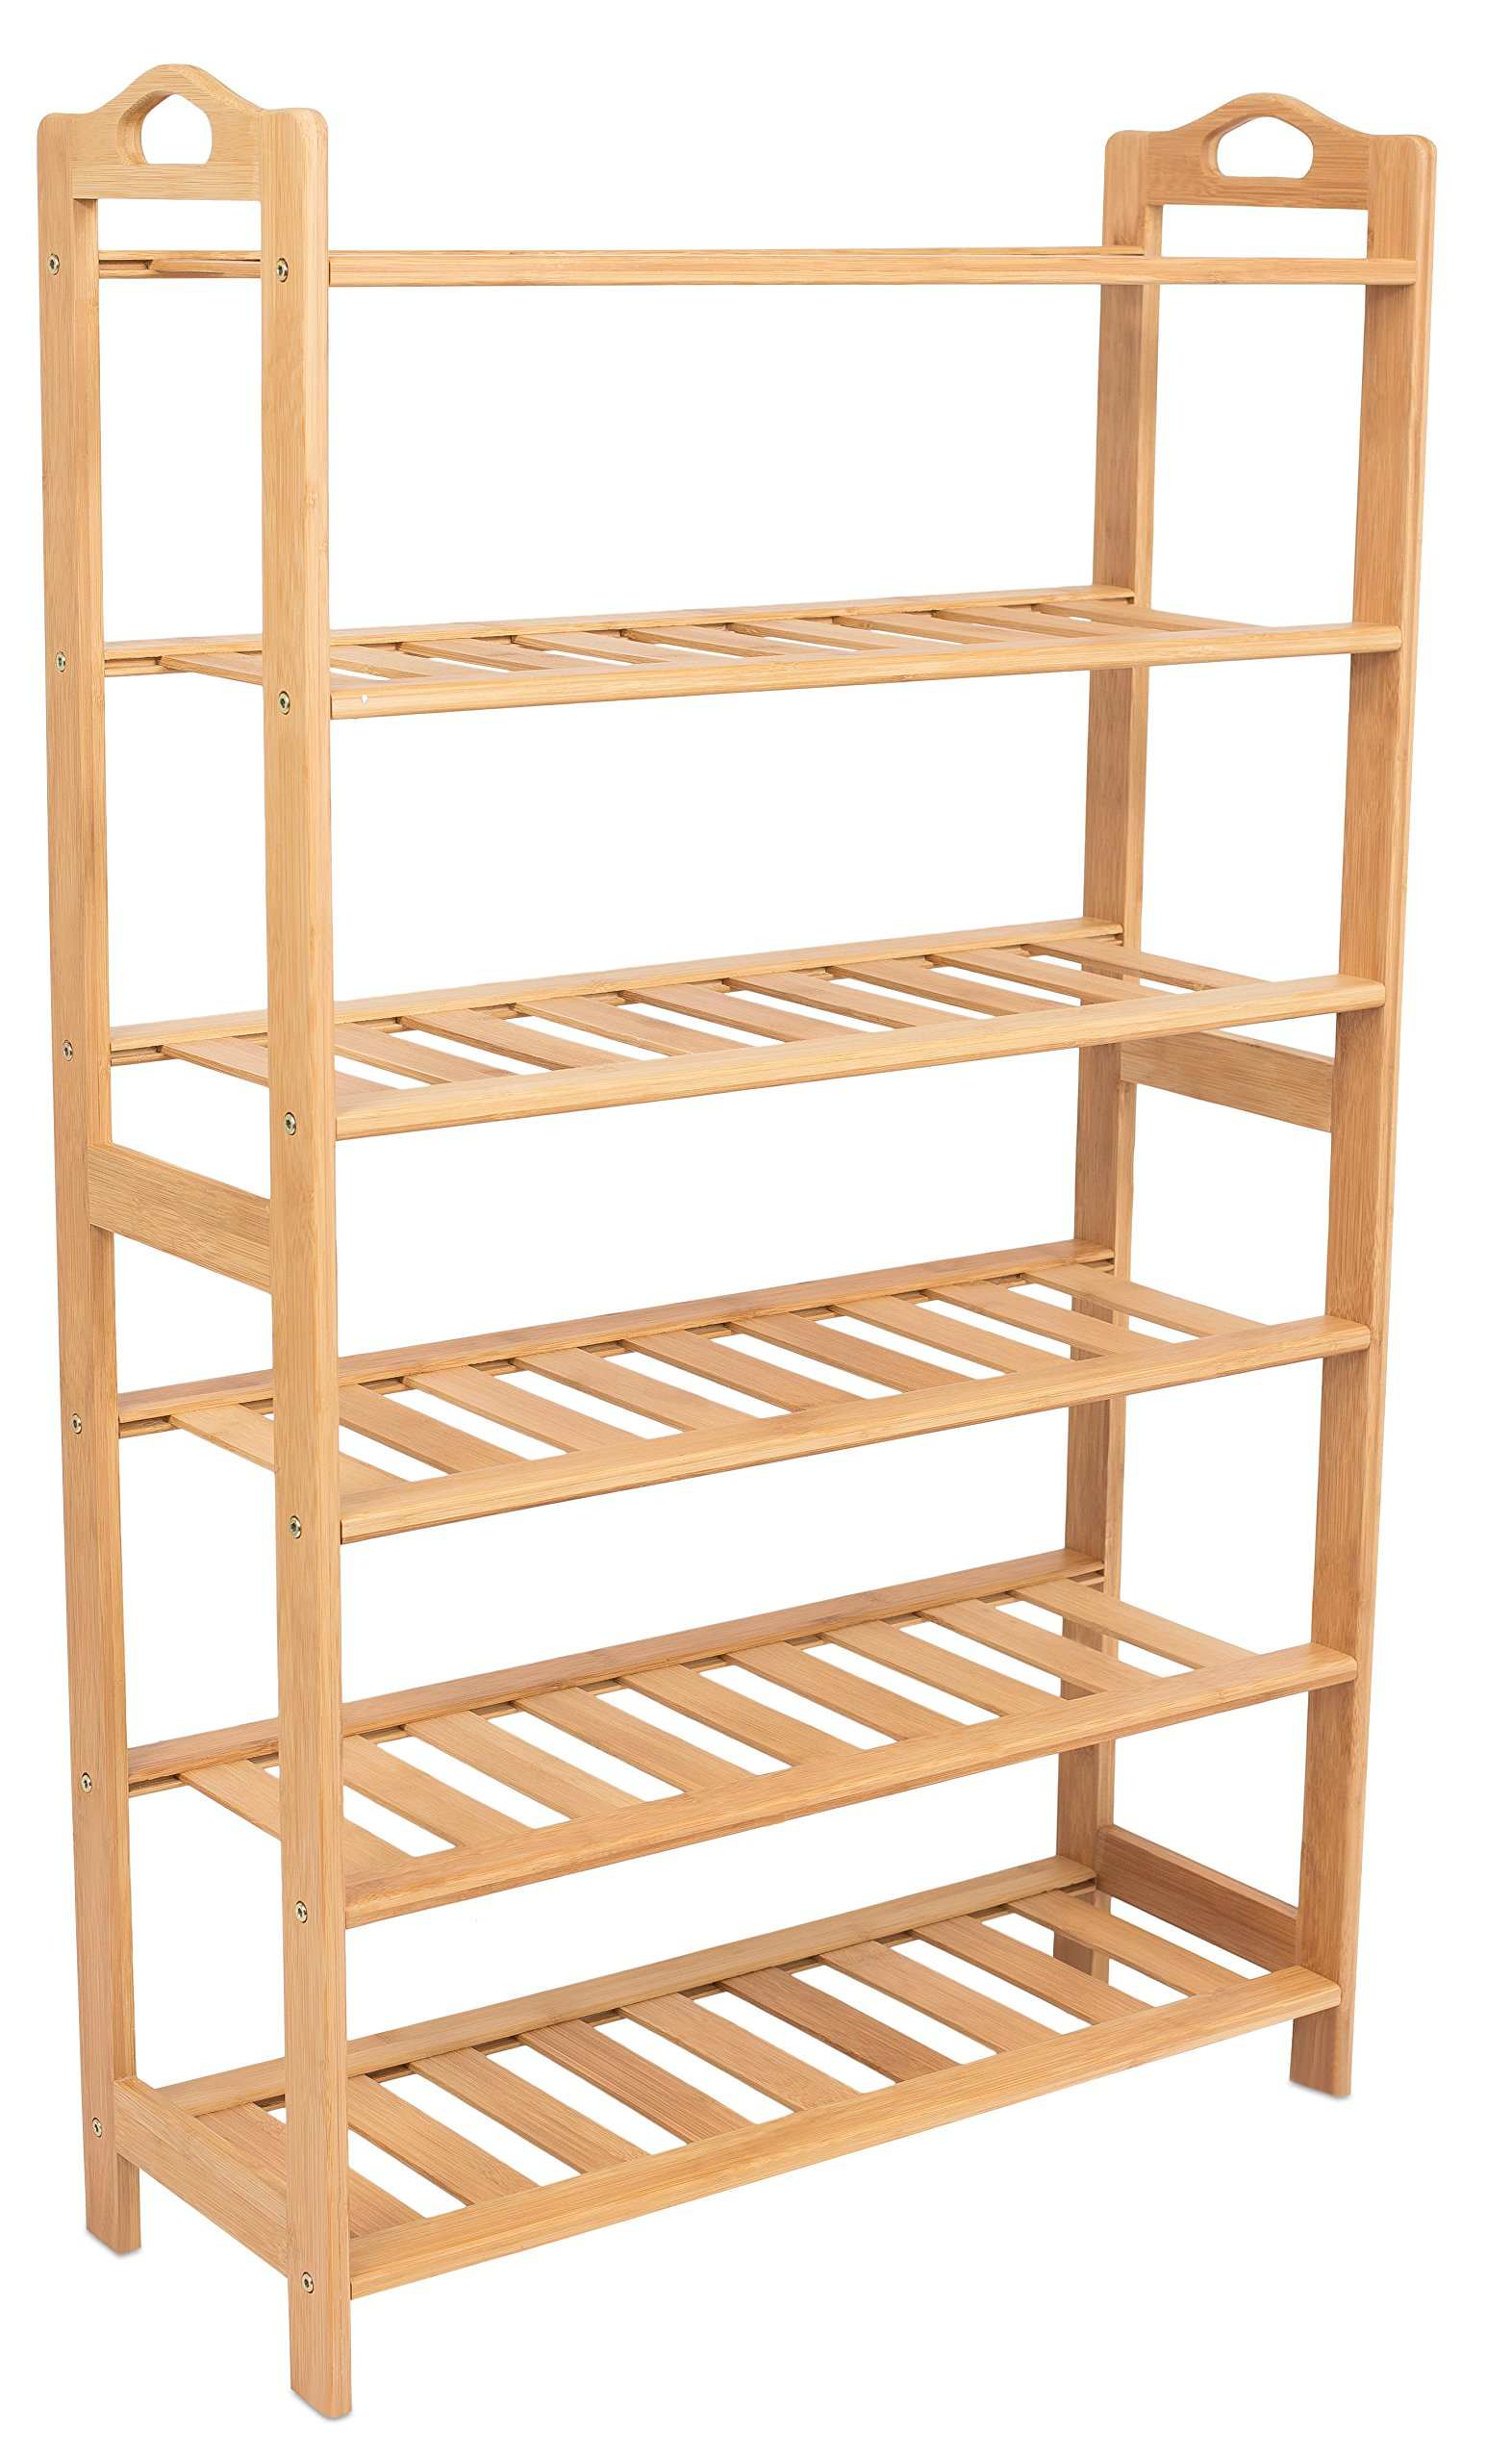 BirdRock Home Free Standing Bamboo Shoe Rack with Handles | 6 Tier | Wood | Closets and Entryway | Organizer | Fits 18 Pairs of Shoes